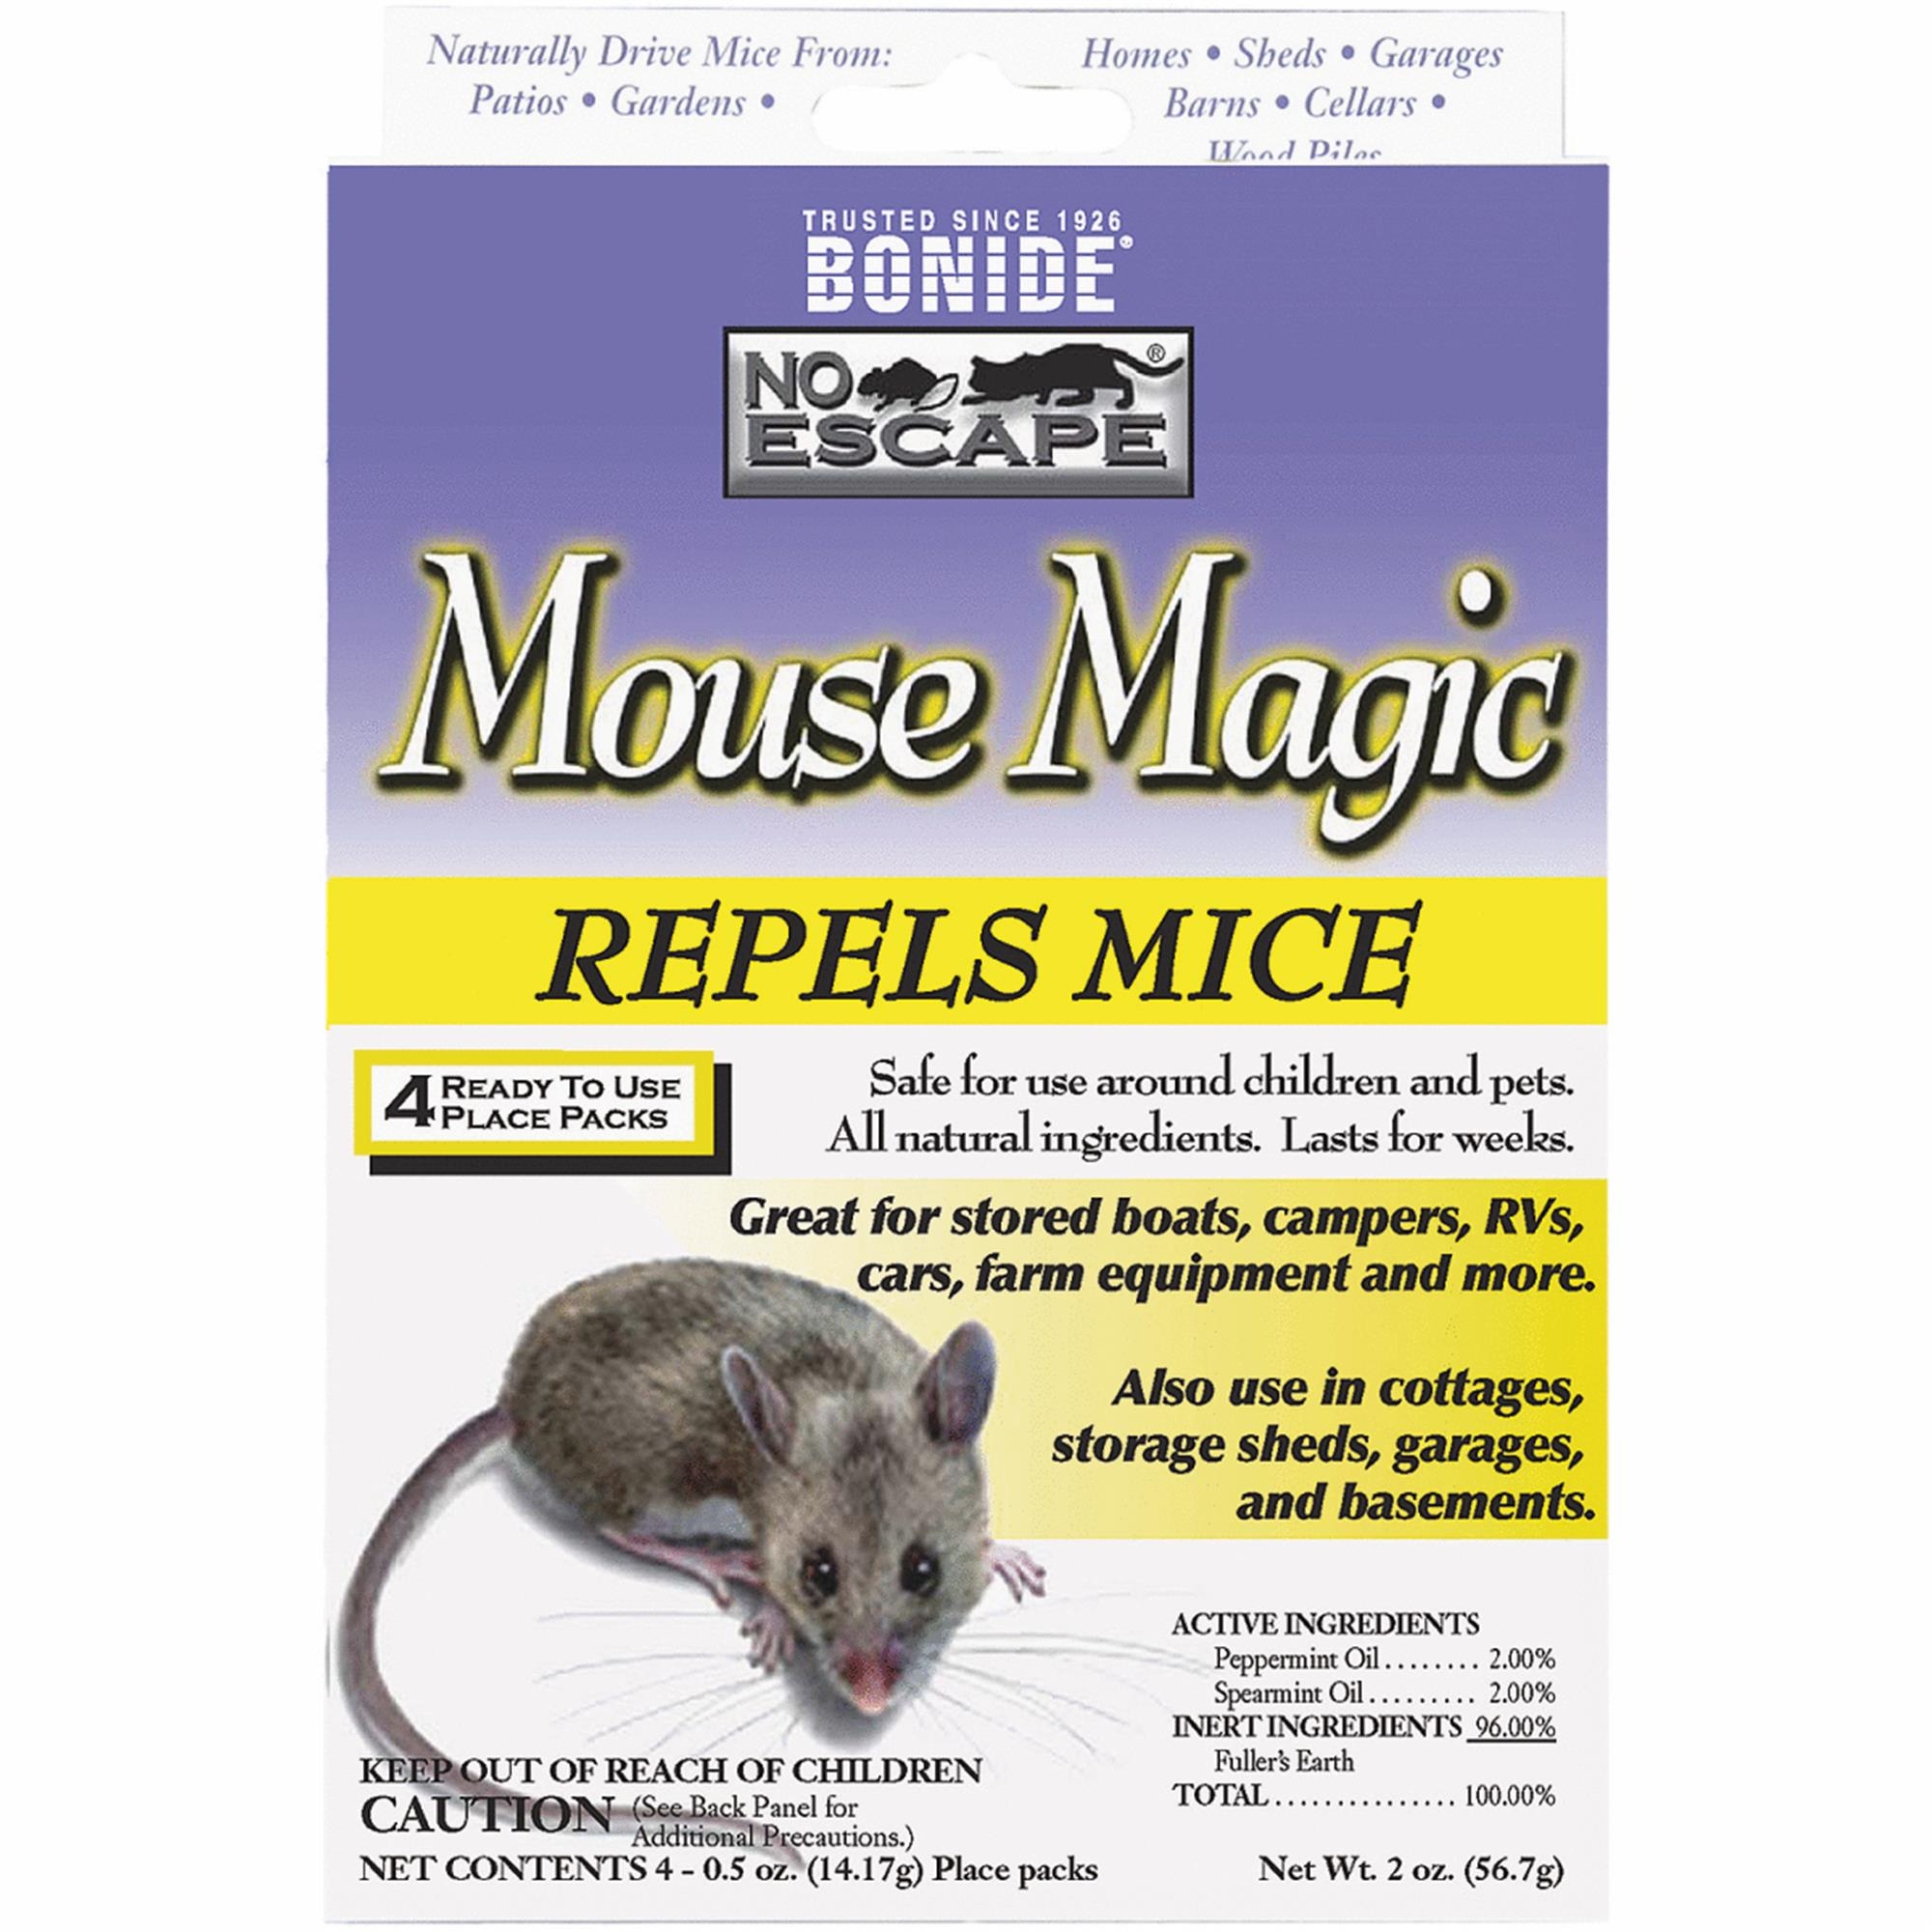 4-Pk. Mouse Magic Ready-to-Use Scent Packs (2-Pack)